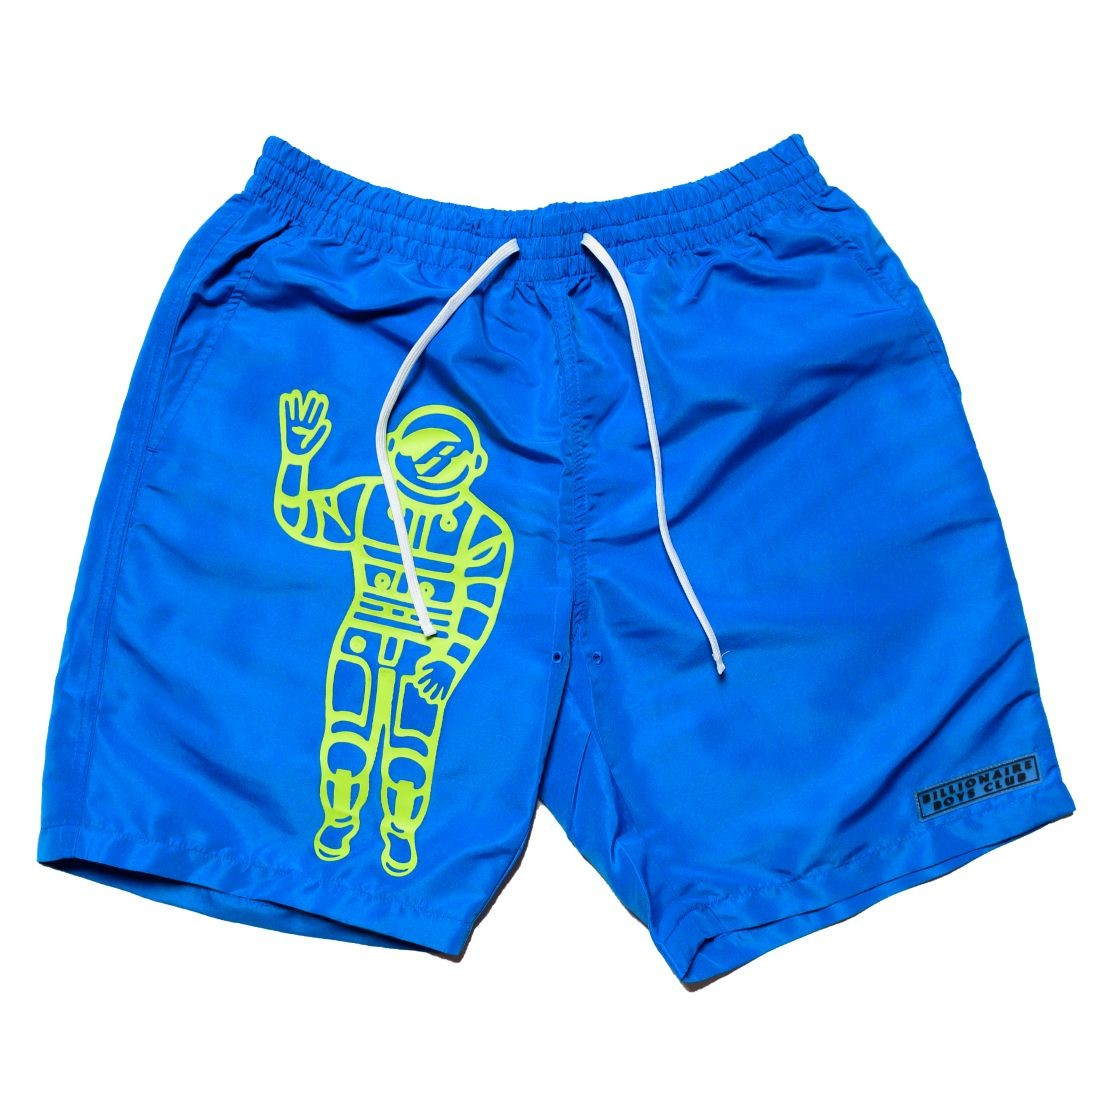 Billionaire Boys Club Men Prosper Shorts (blue)